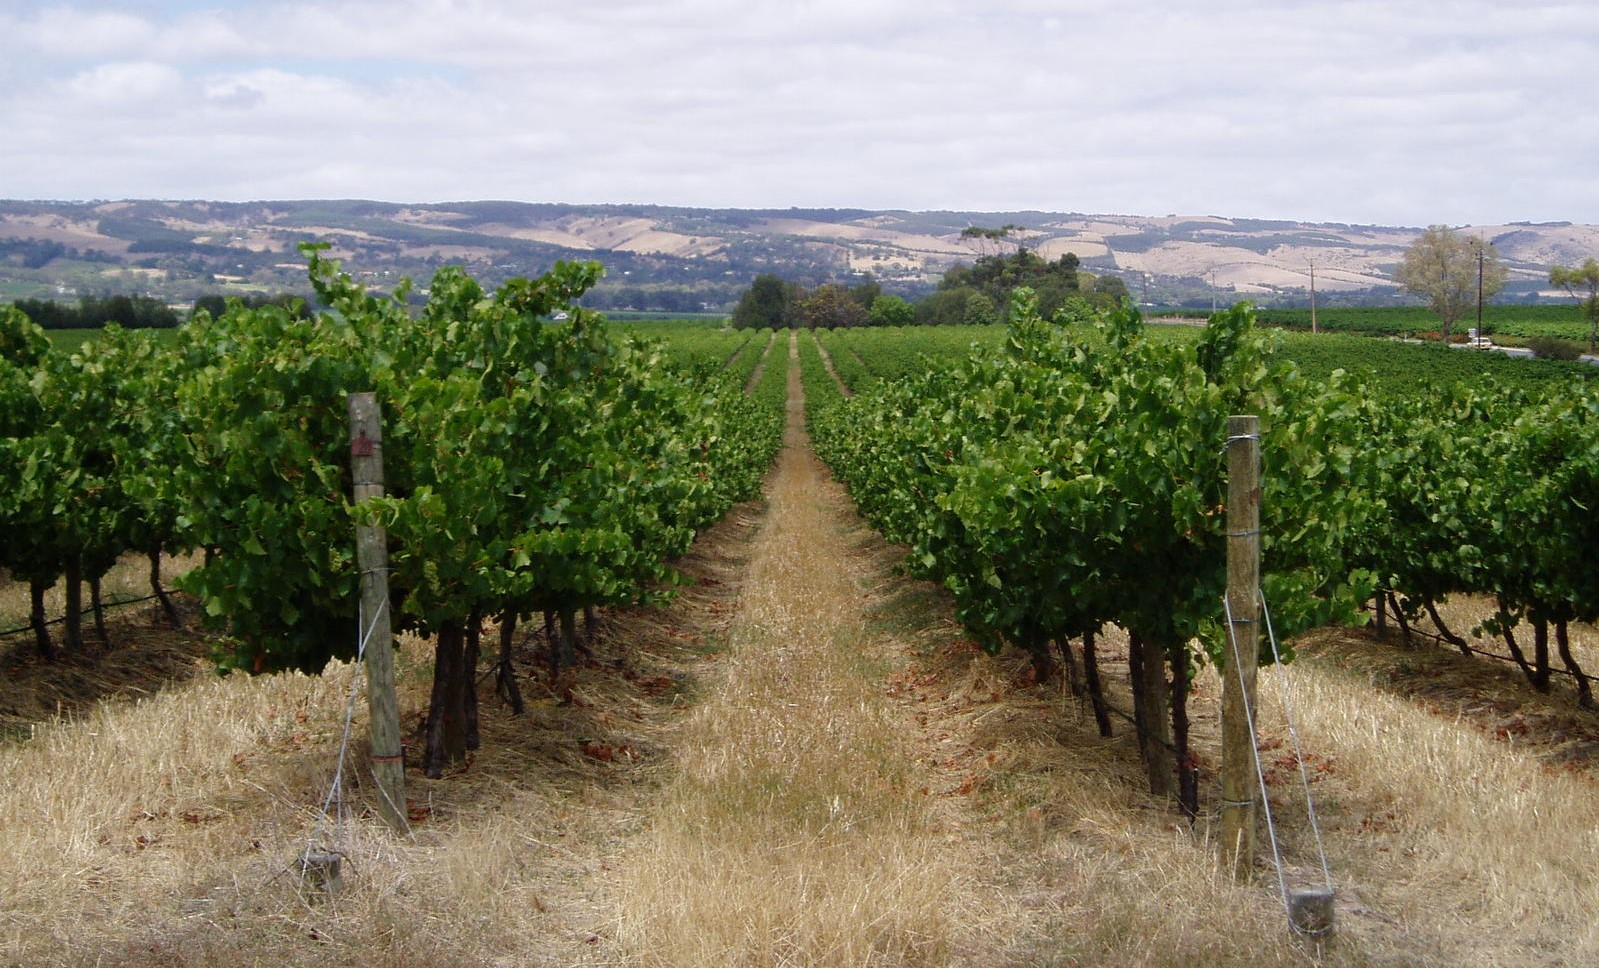 Numbers-driven vineyard management